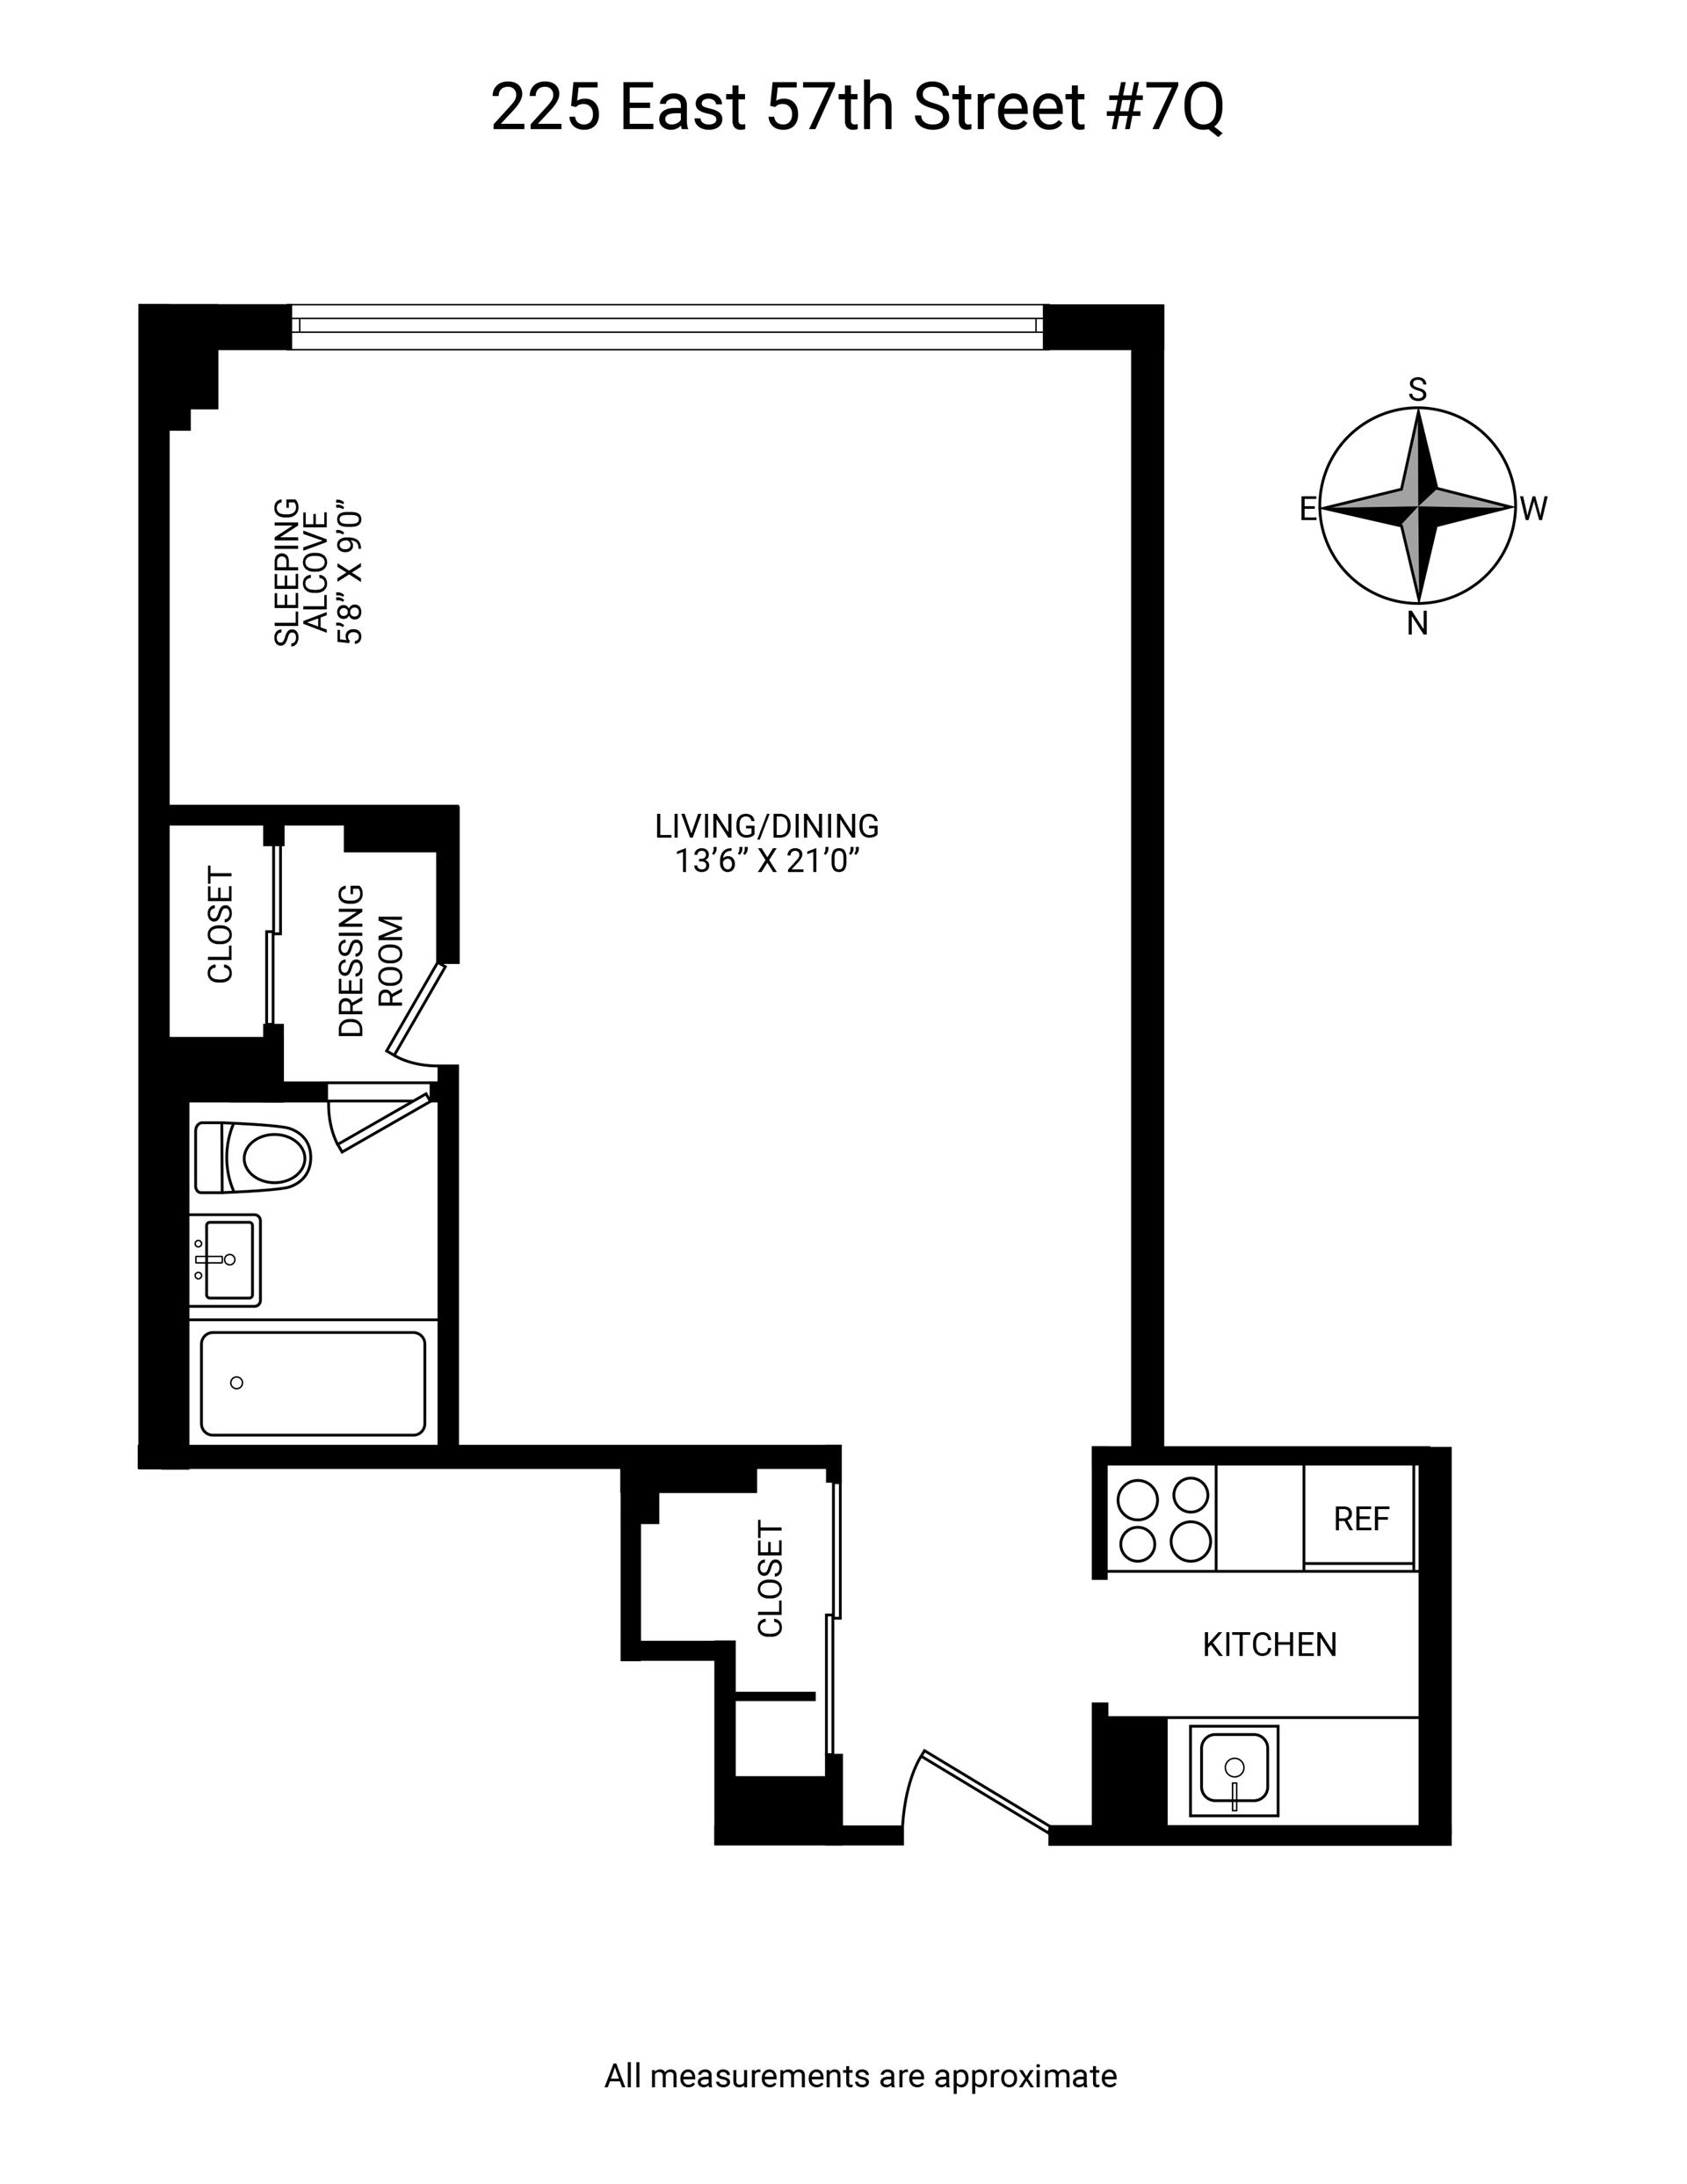 Floor plan of Harridge House, 225 East 57th St, 7Q - Sutton Area, New York